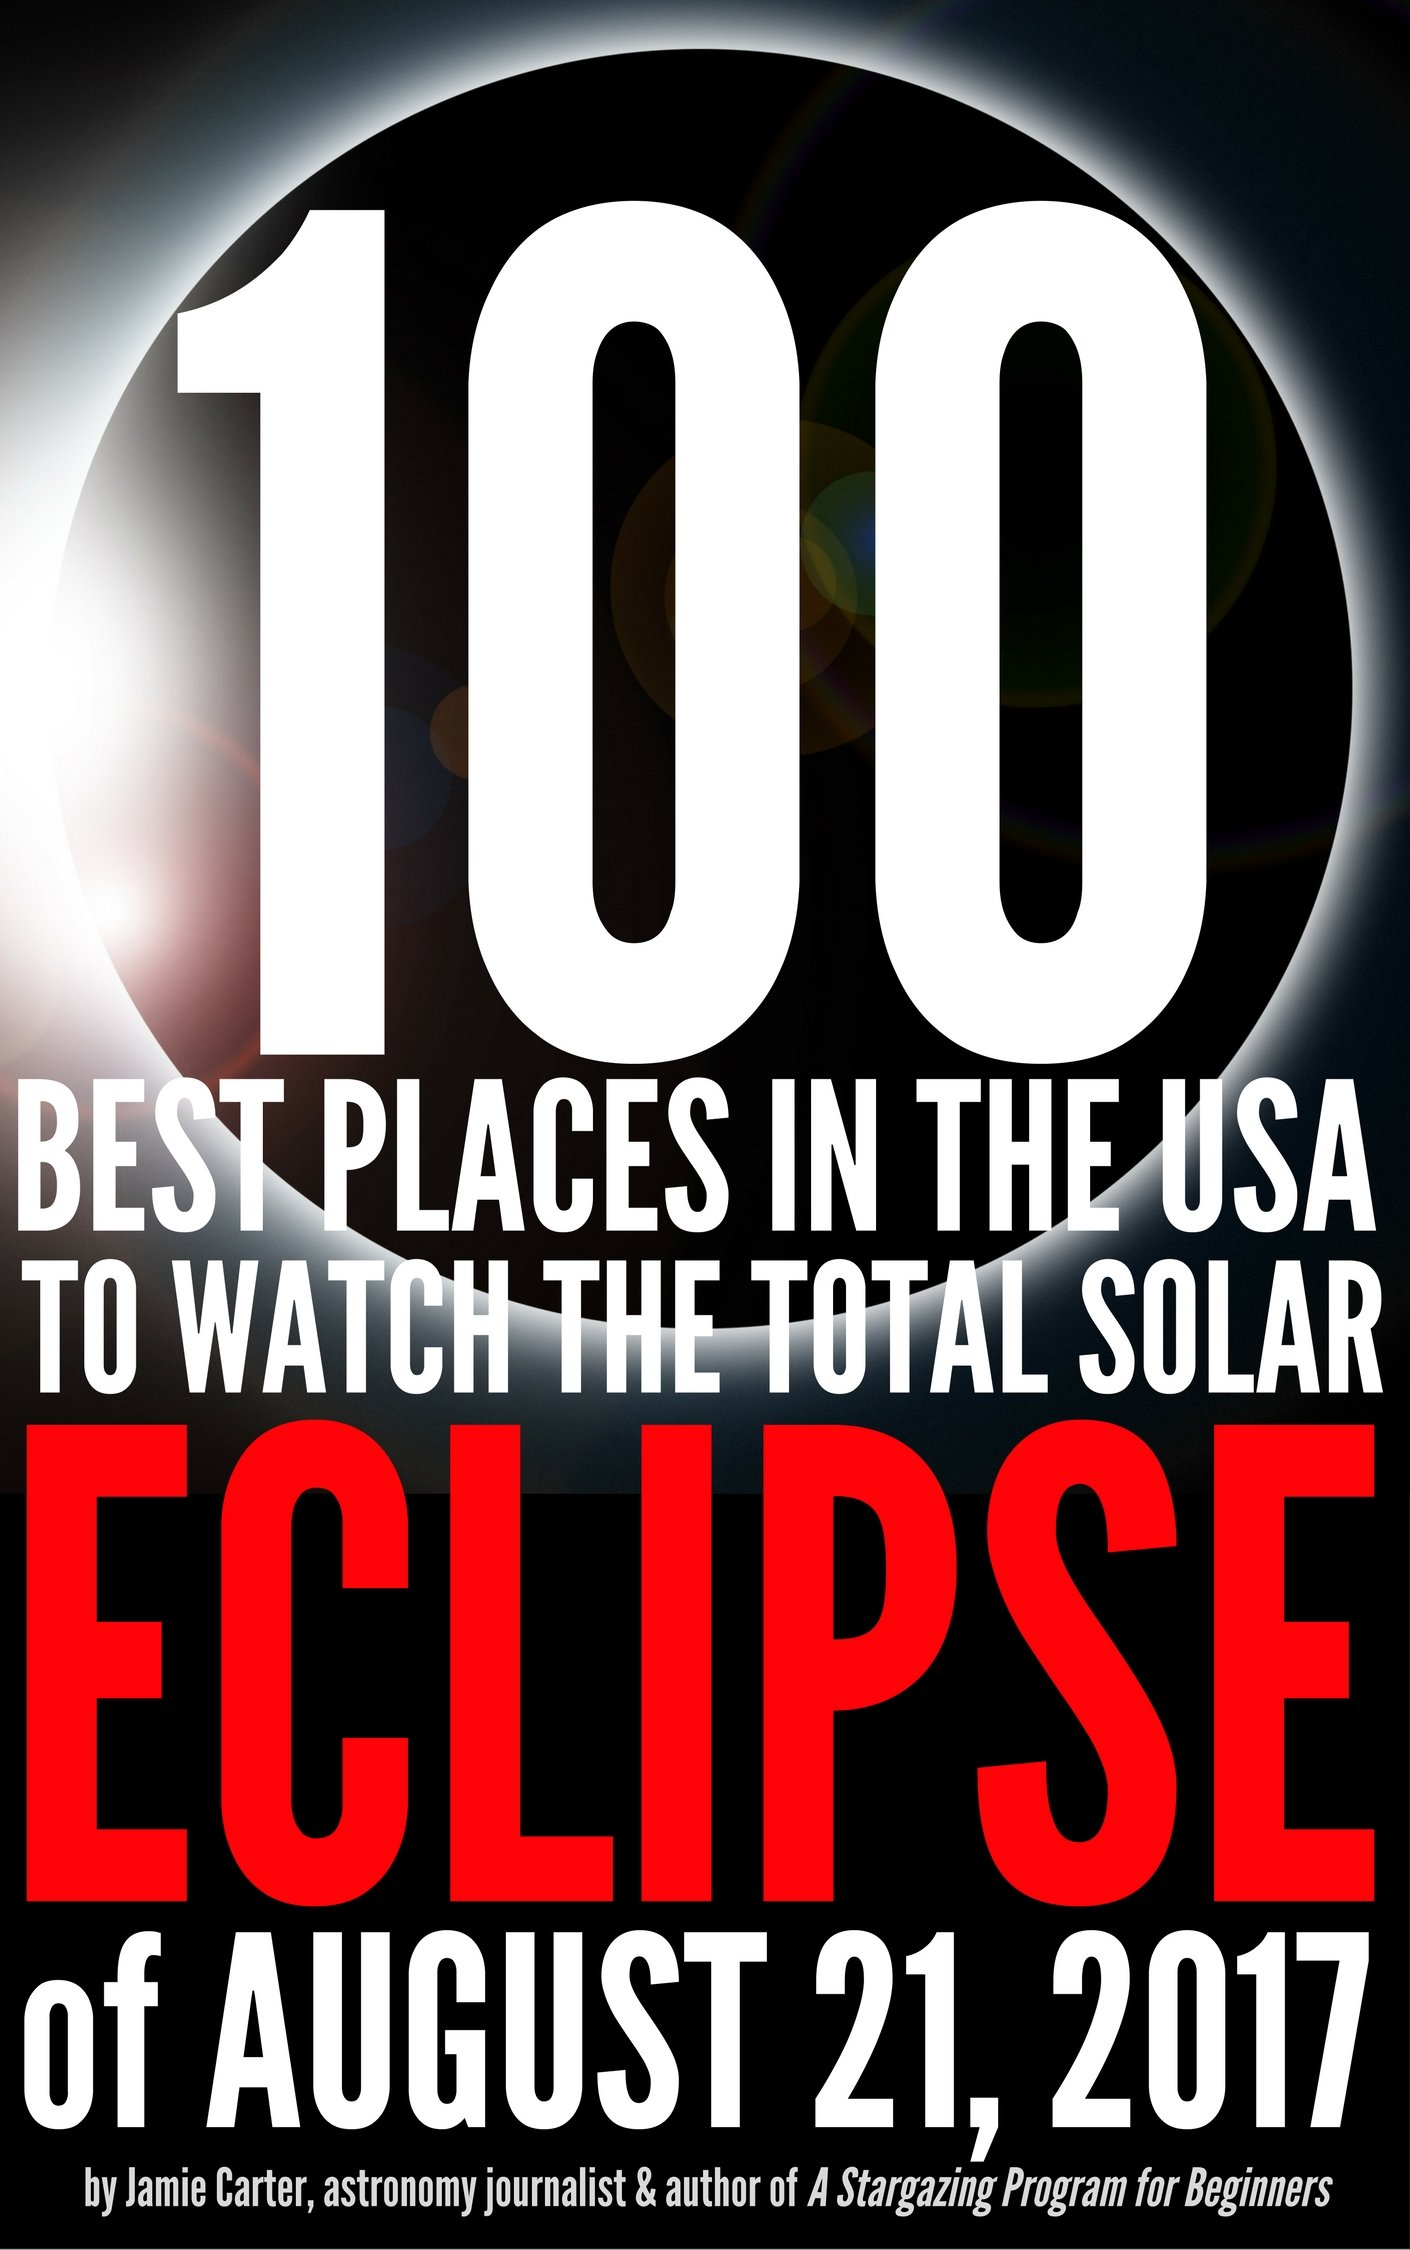 100 Best places in the USA to see the eclipse